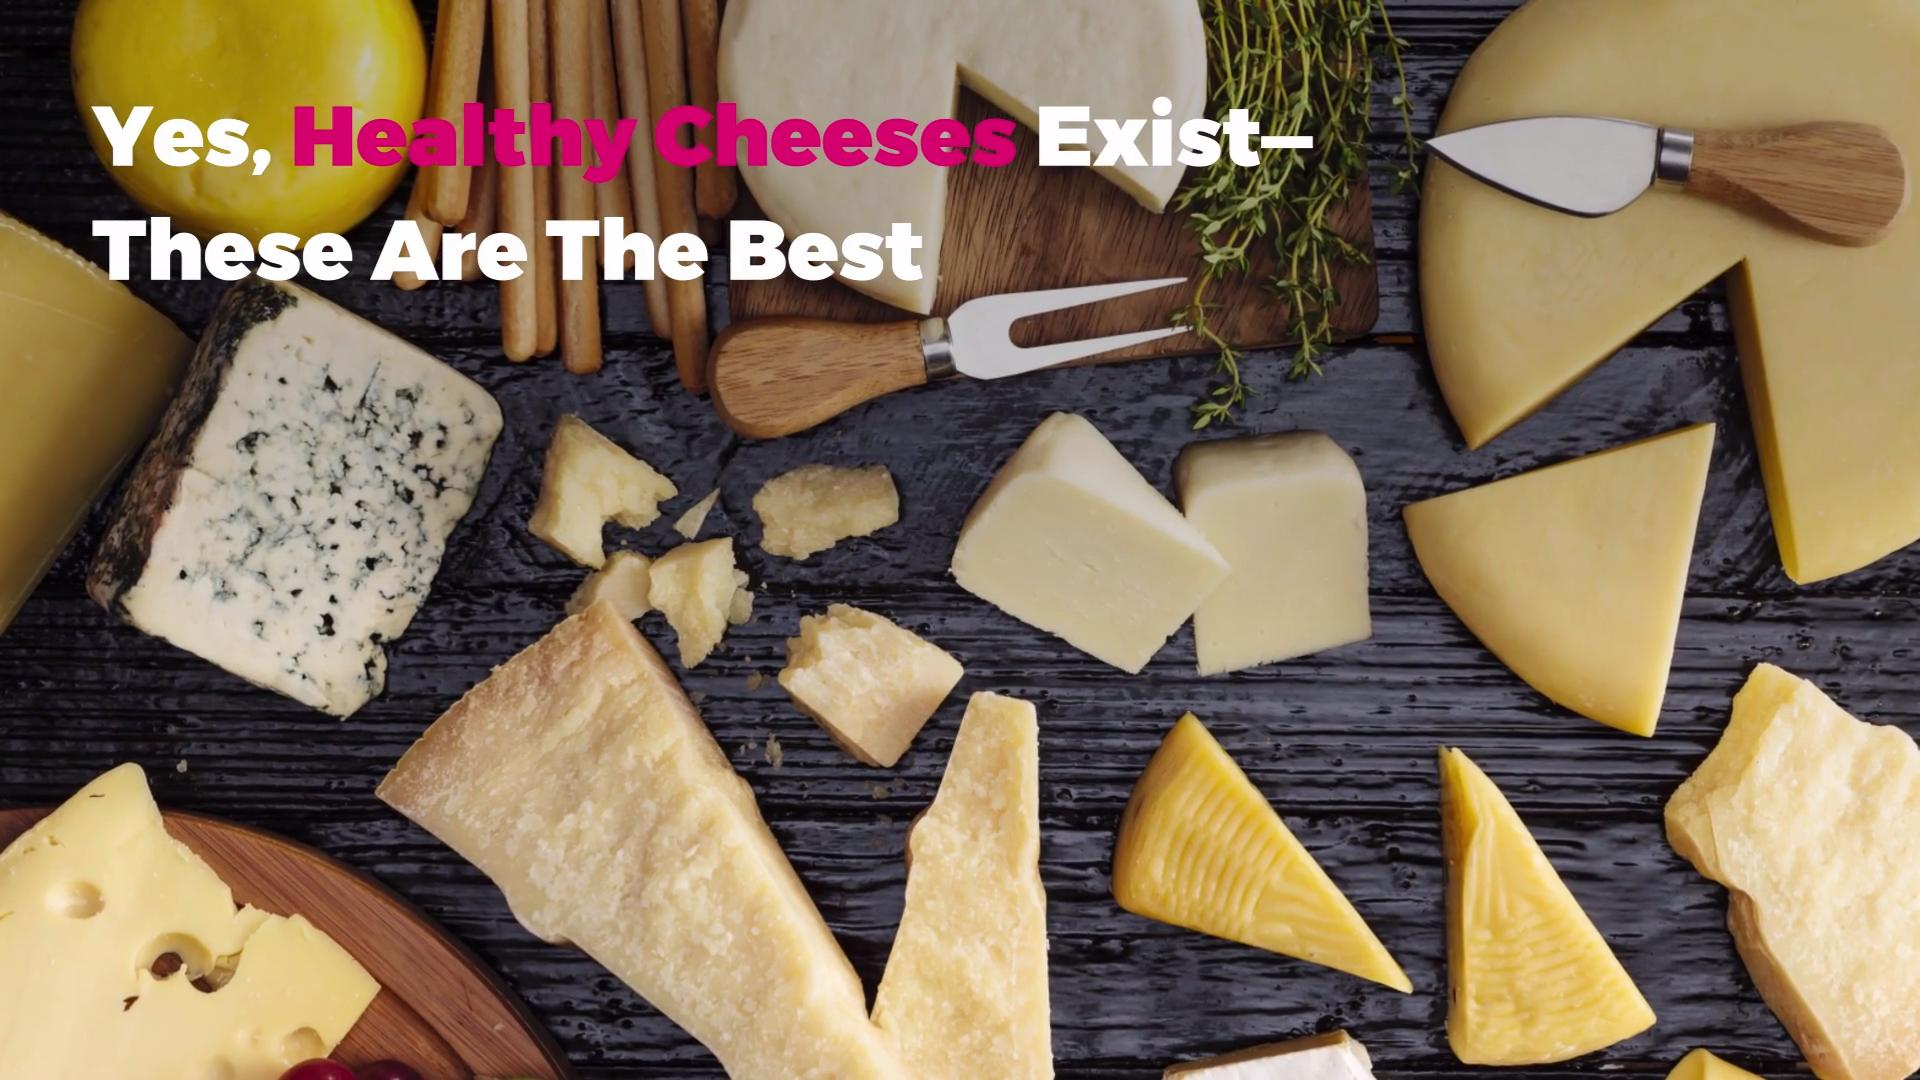 Yes, Healthy Cheeses Exist—These Are The Best